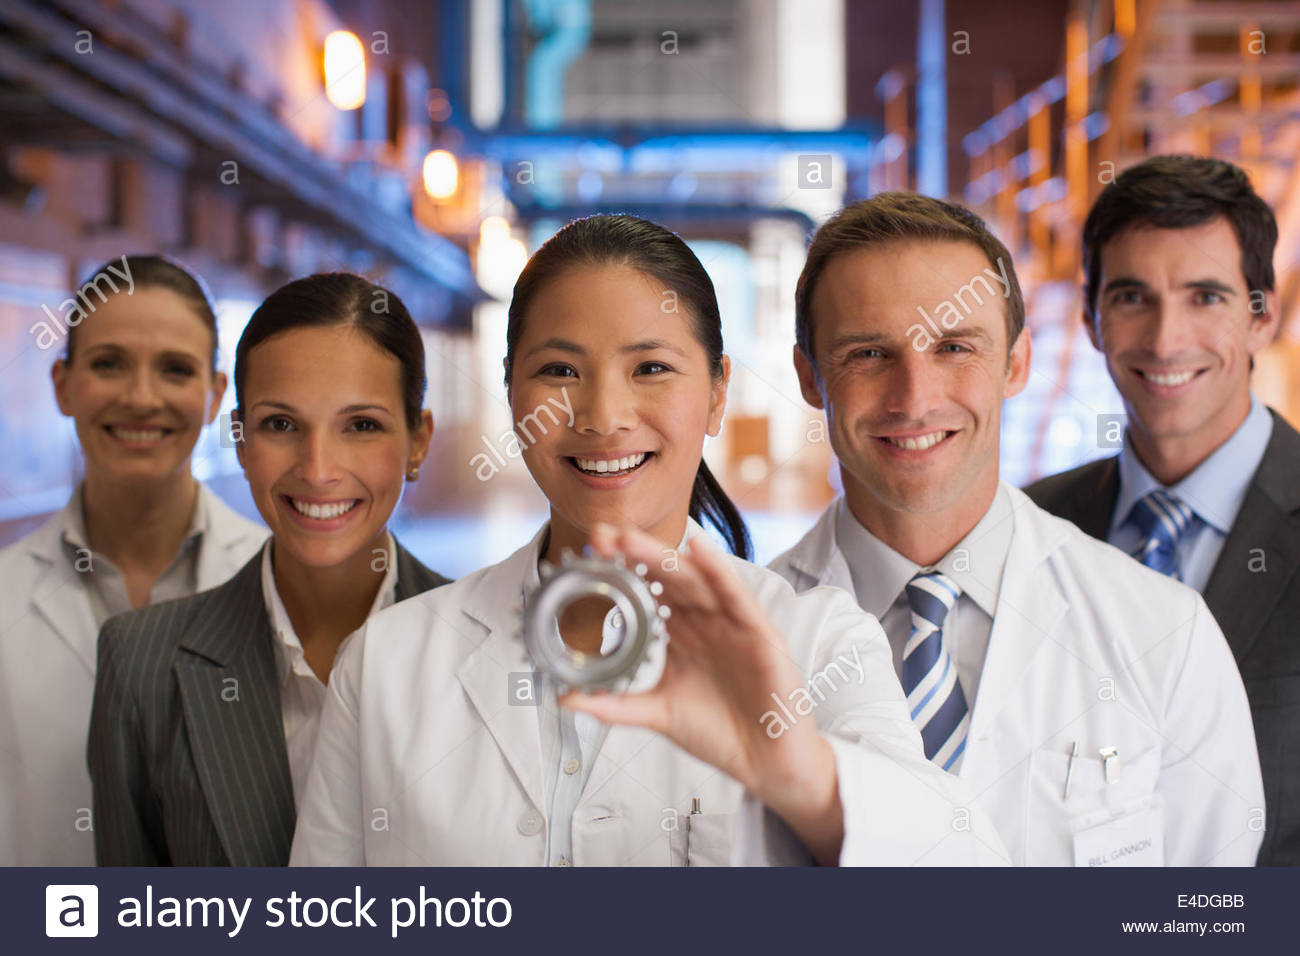 Business people looking at cog together - Stock Image